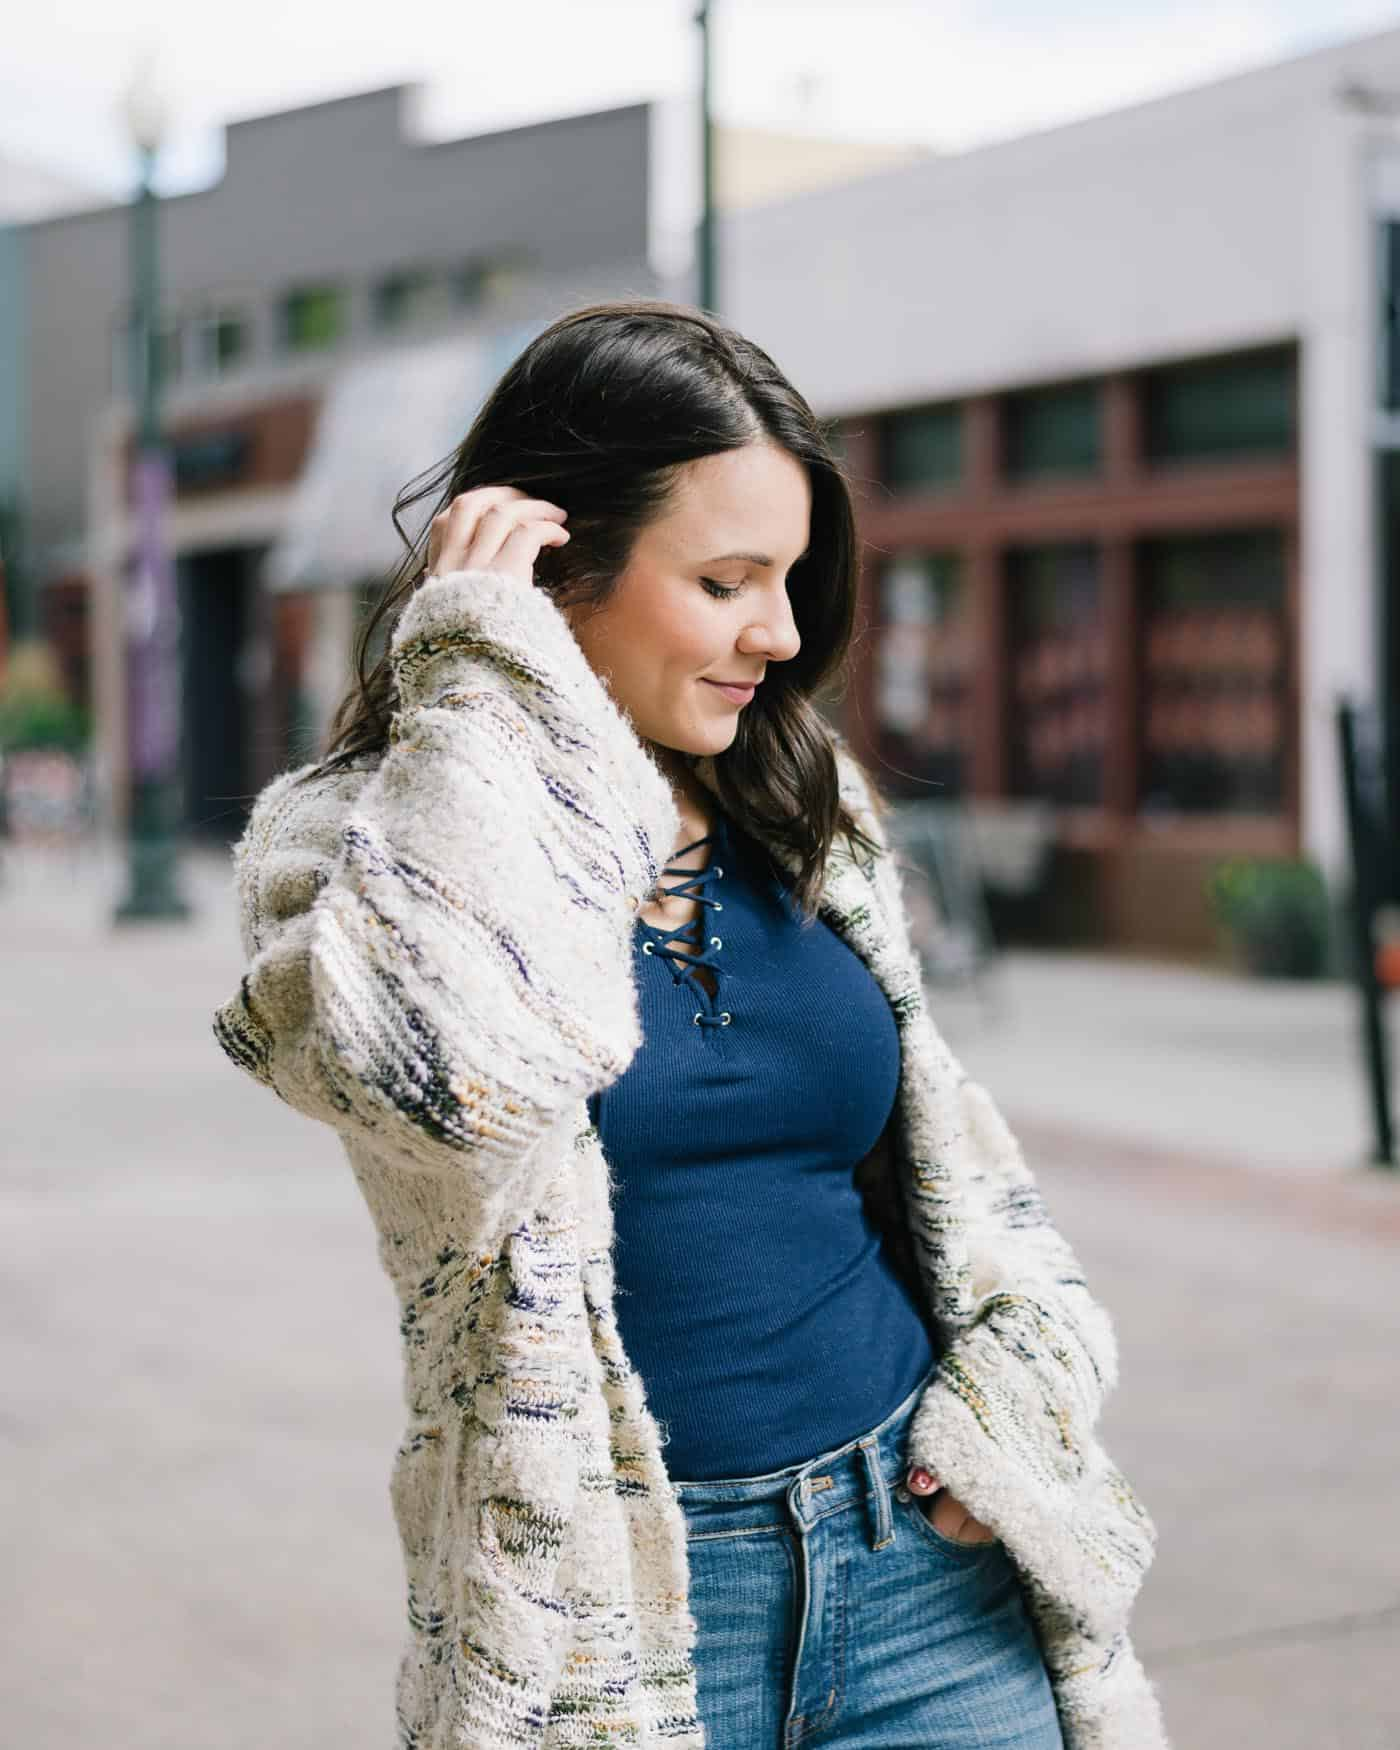 anthropologie cardigan, fall outfit ideas, things to do in Asheville - My Style Vita @mystylevita